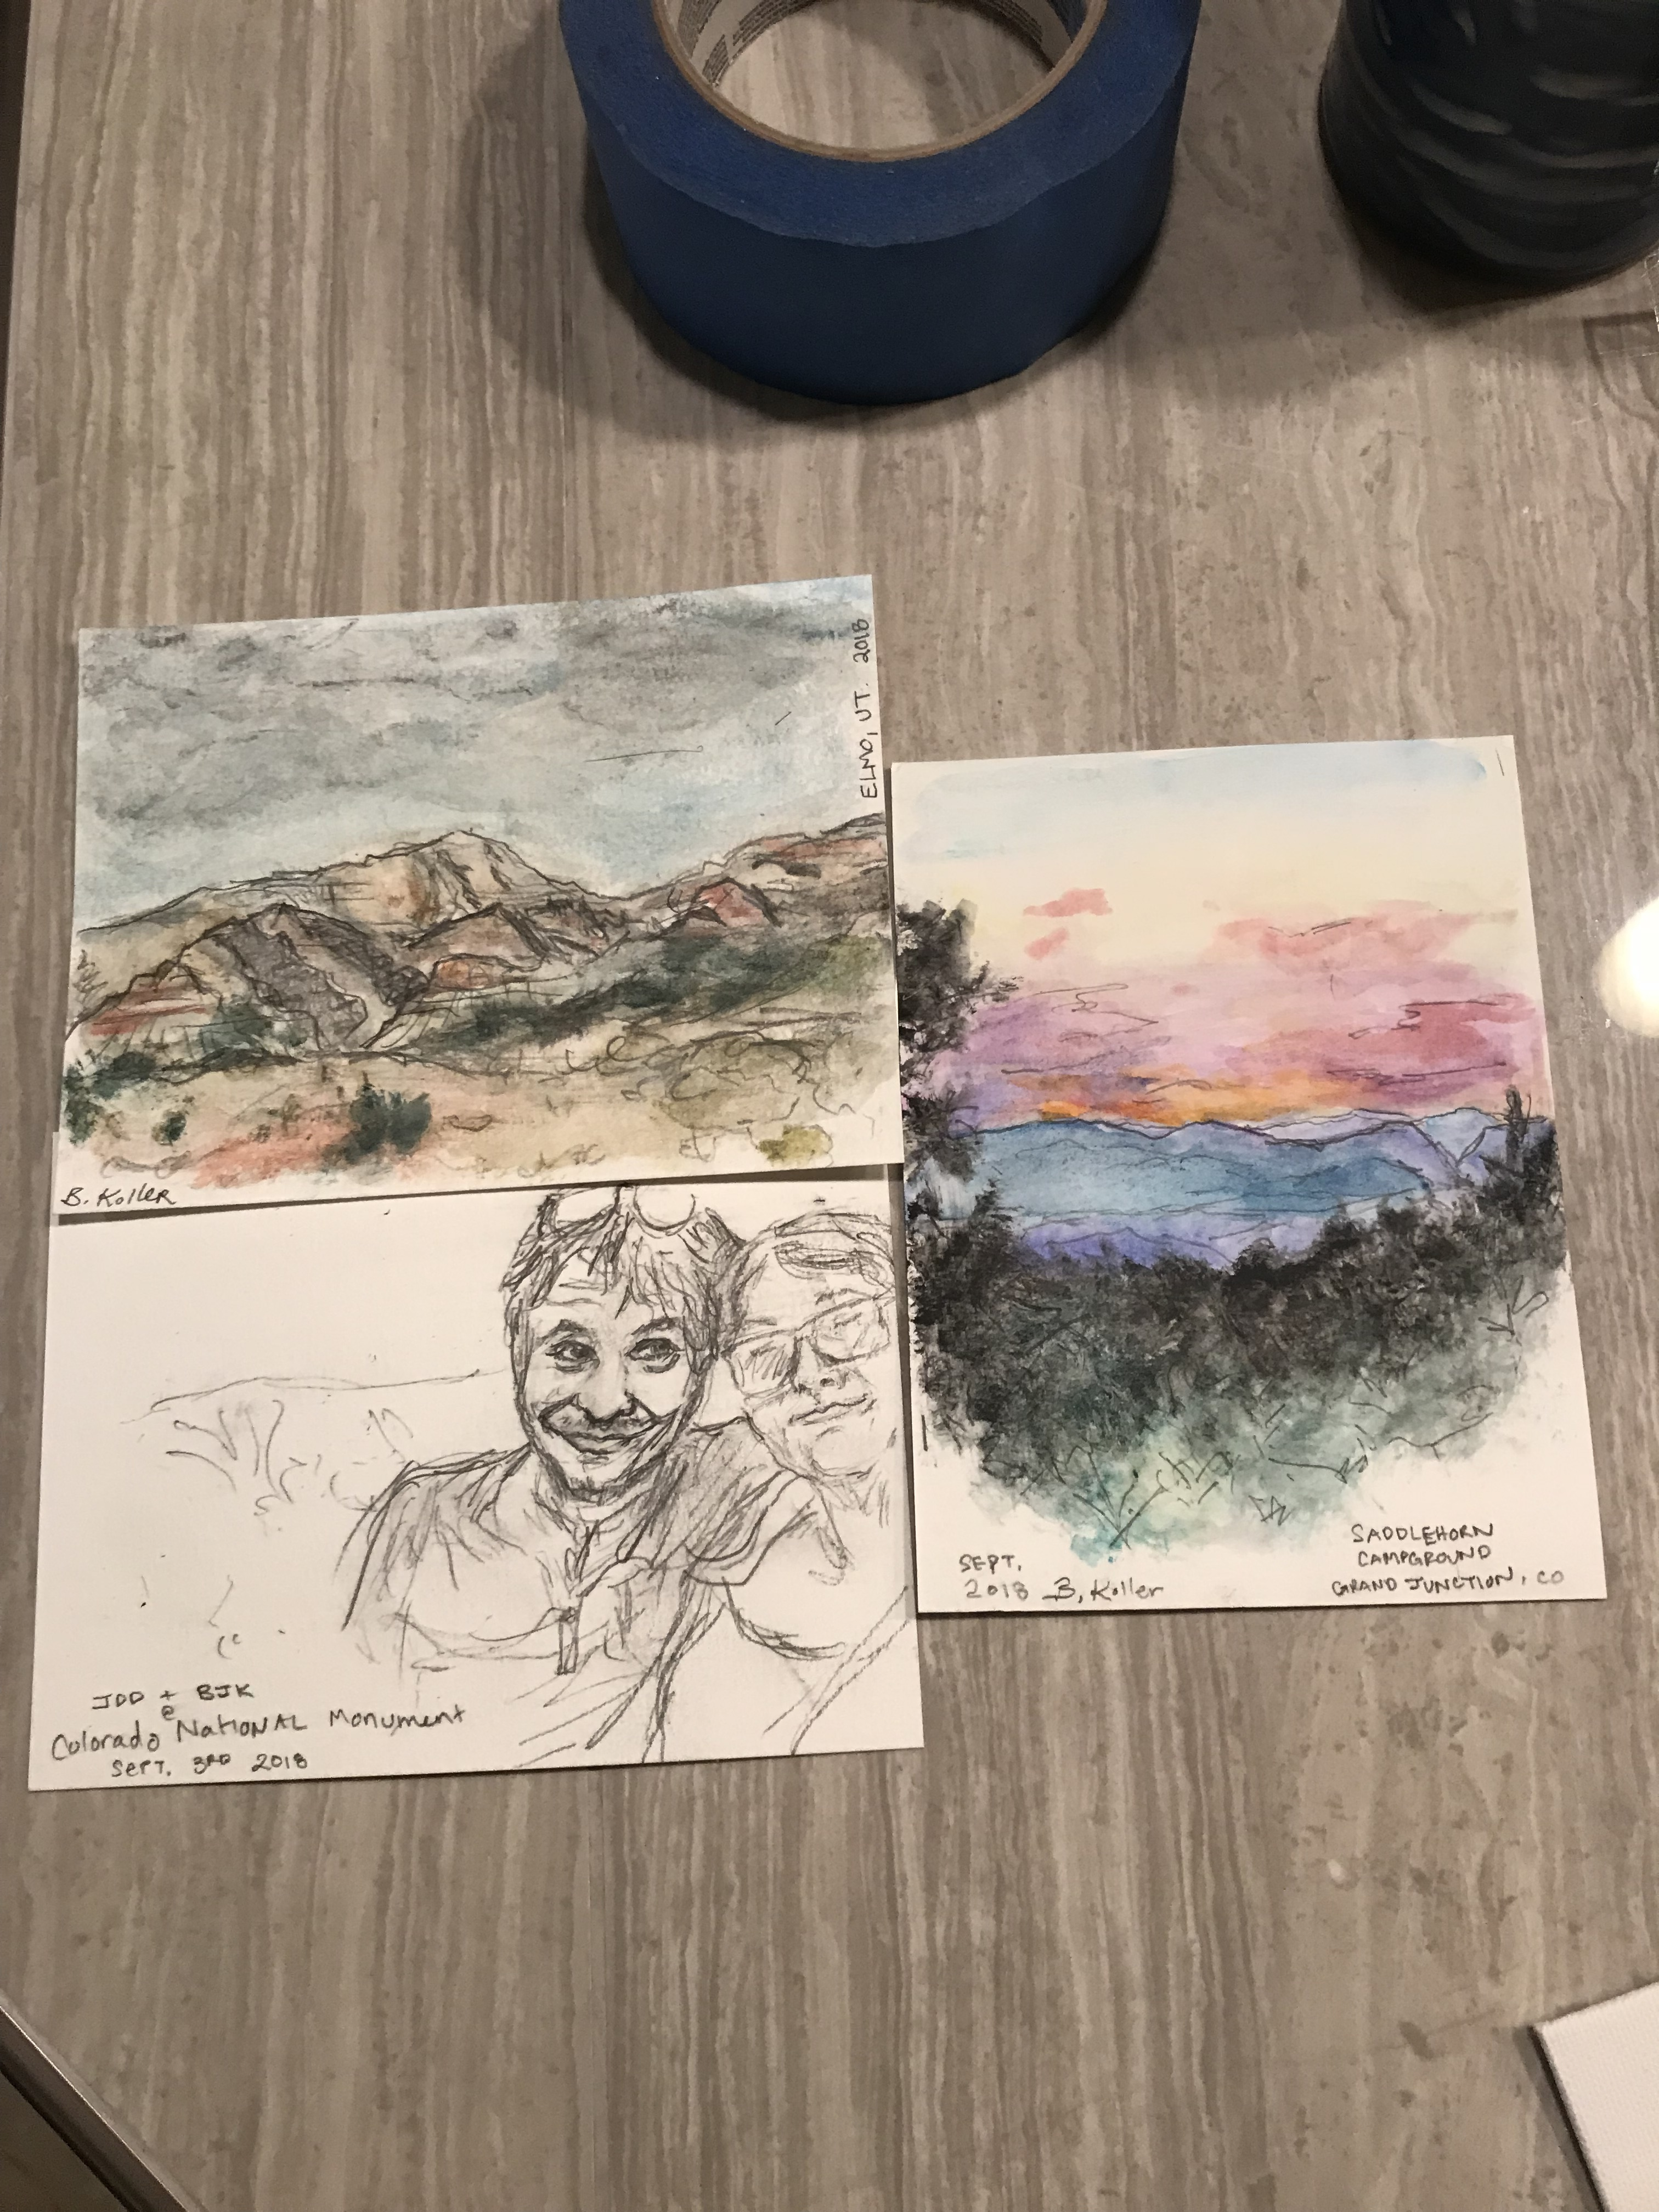 Personal Postcards from Roadtrip:CO